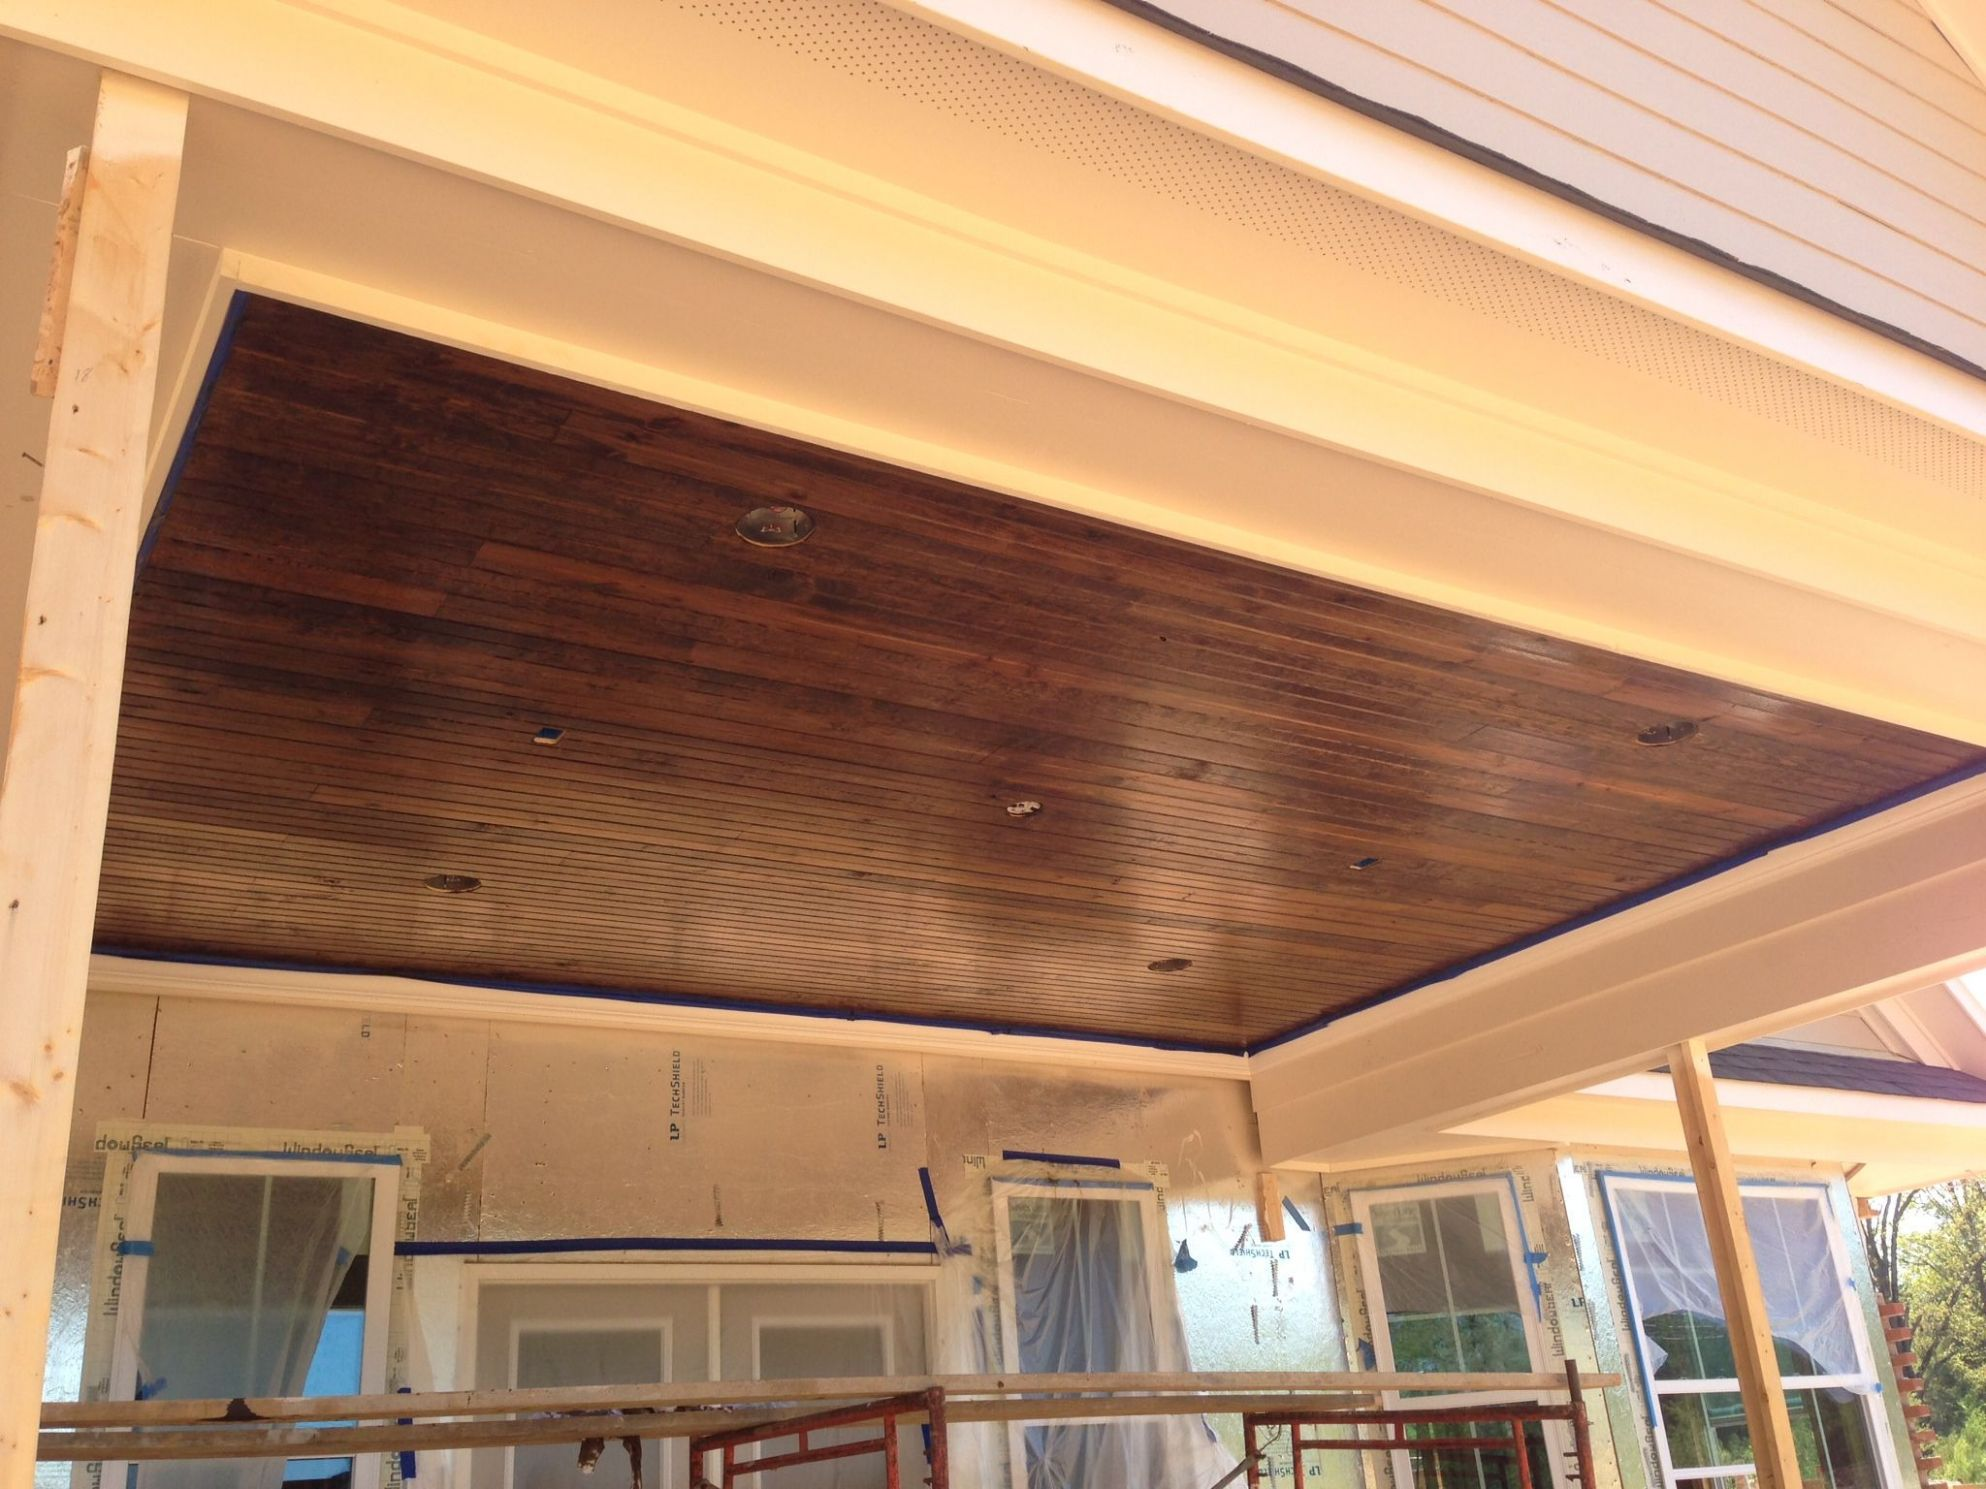 Our patio ceiling! Tongue / groove wood with a dark stain. Love it ..